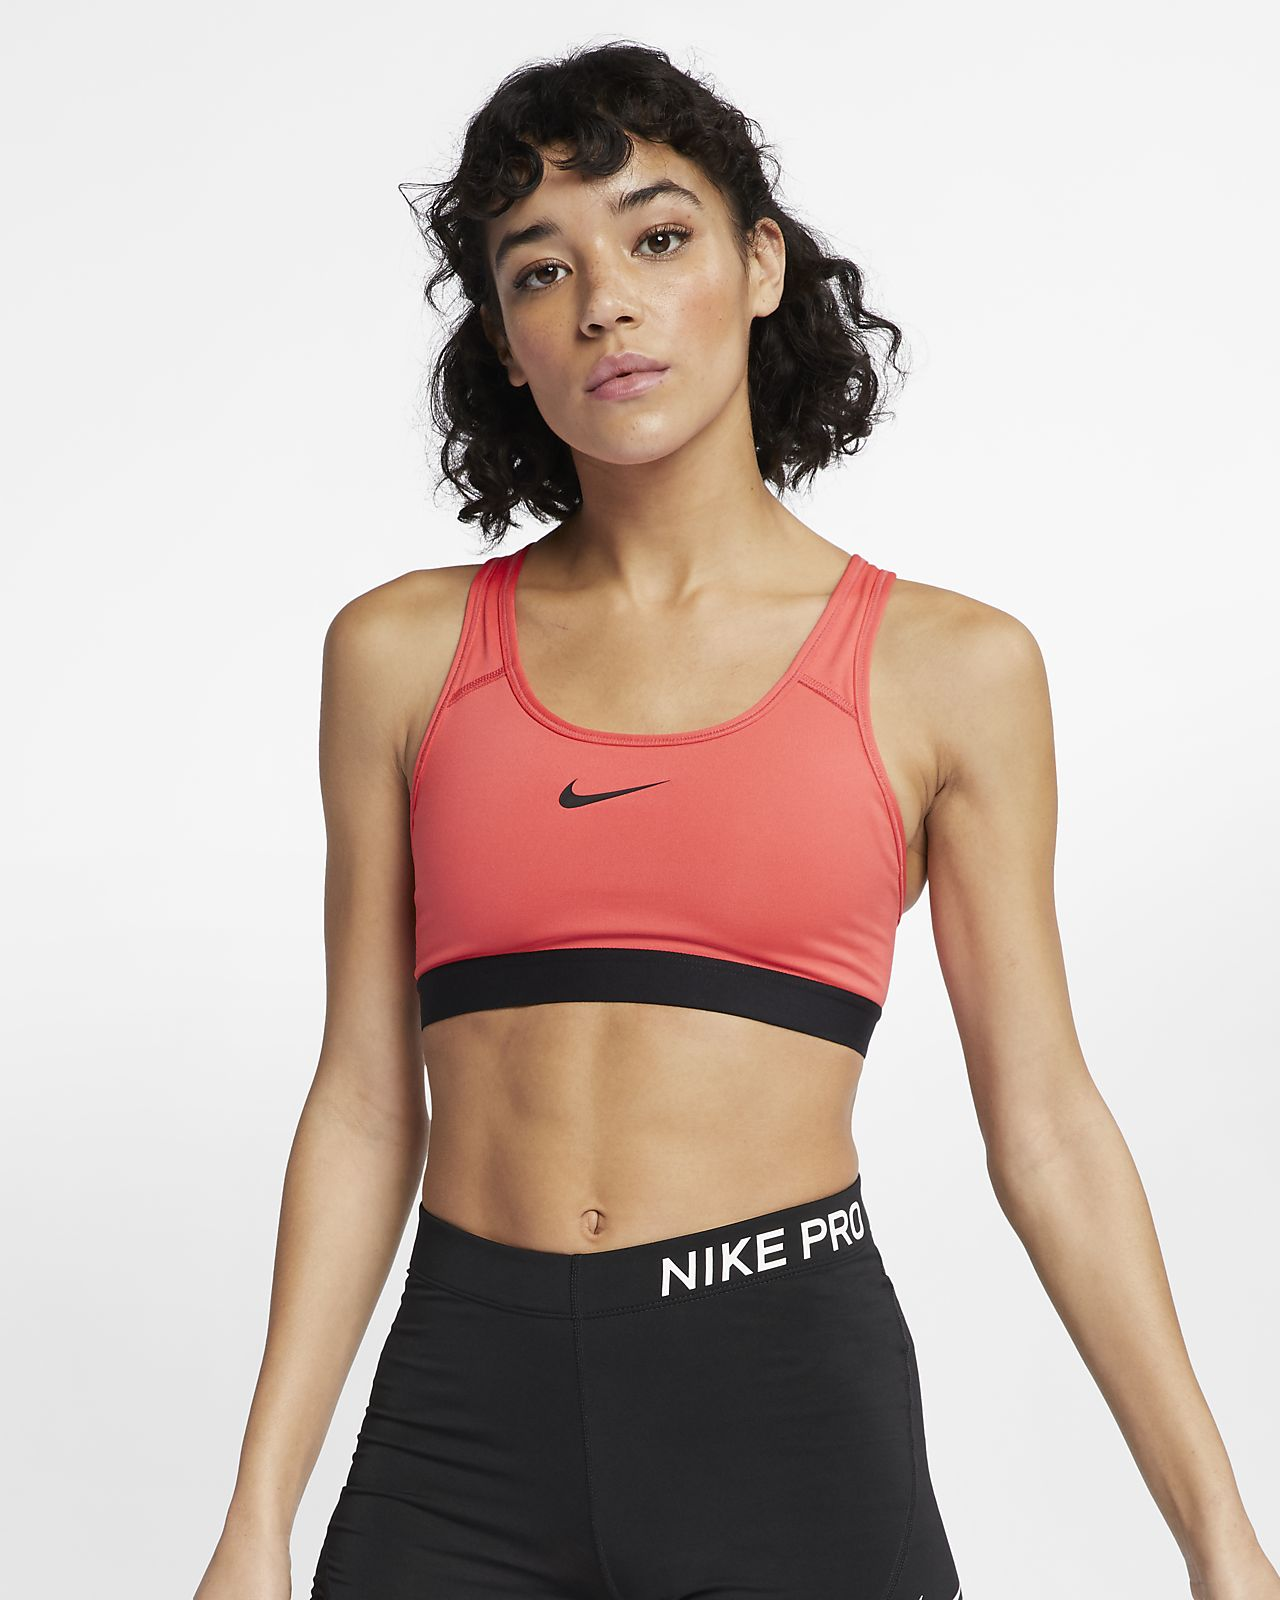 f80fc7a3b02f3d Nike Classic Padded Women s Medium-Support Sports Bra. Nike.com